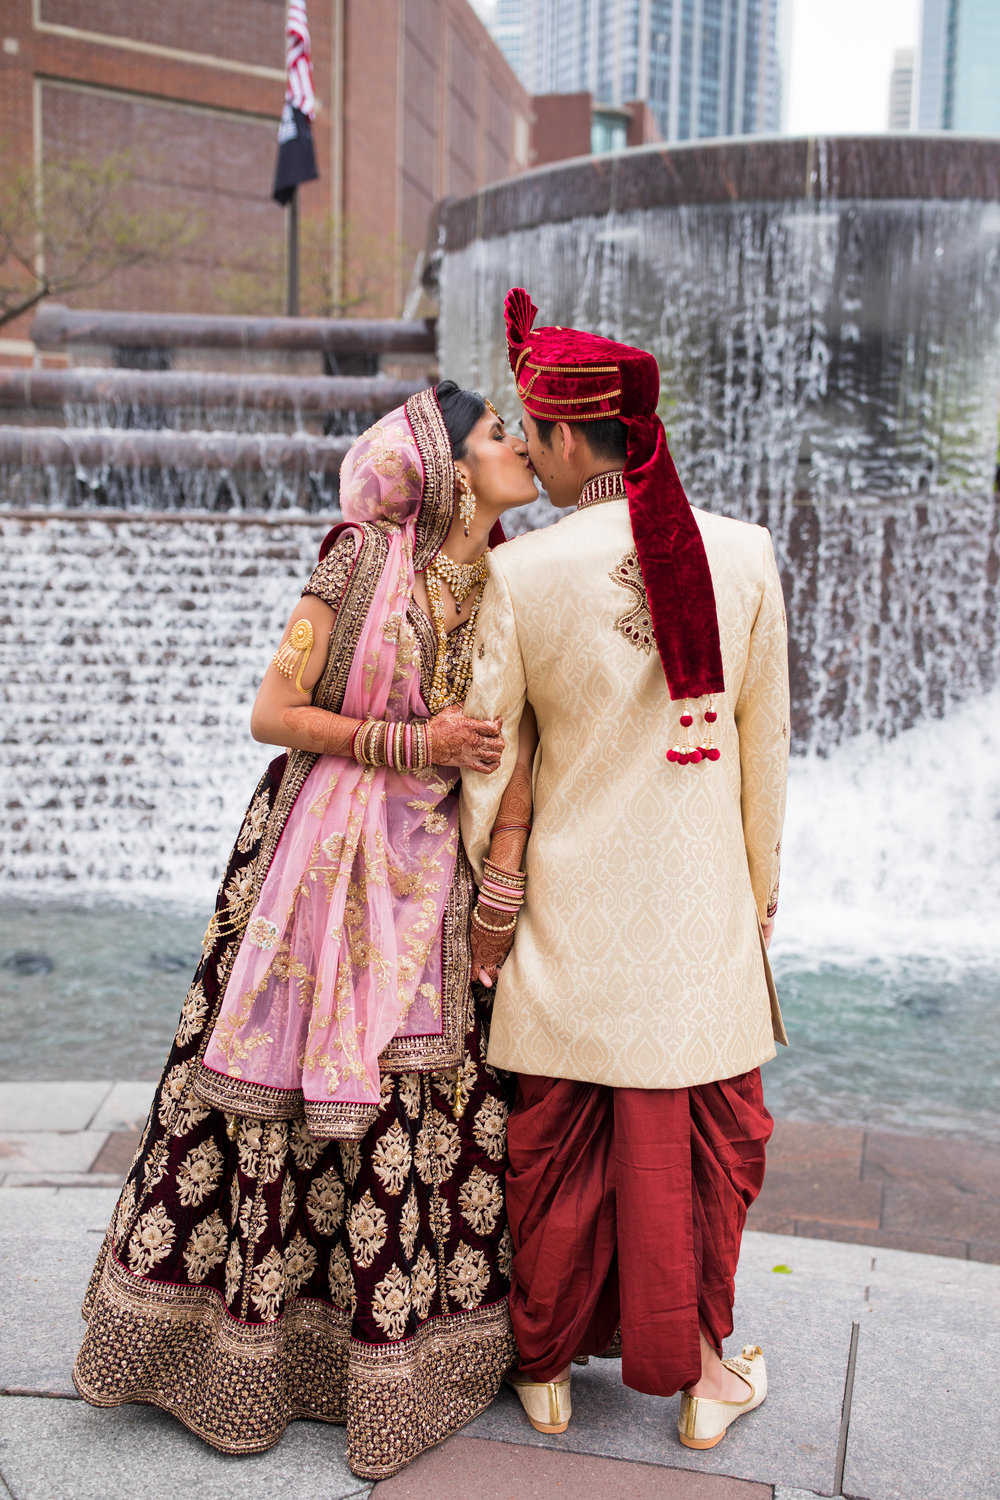 LeCapeWeddings - Chicago South Asian Wedding -51.jpg